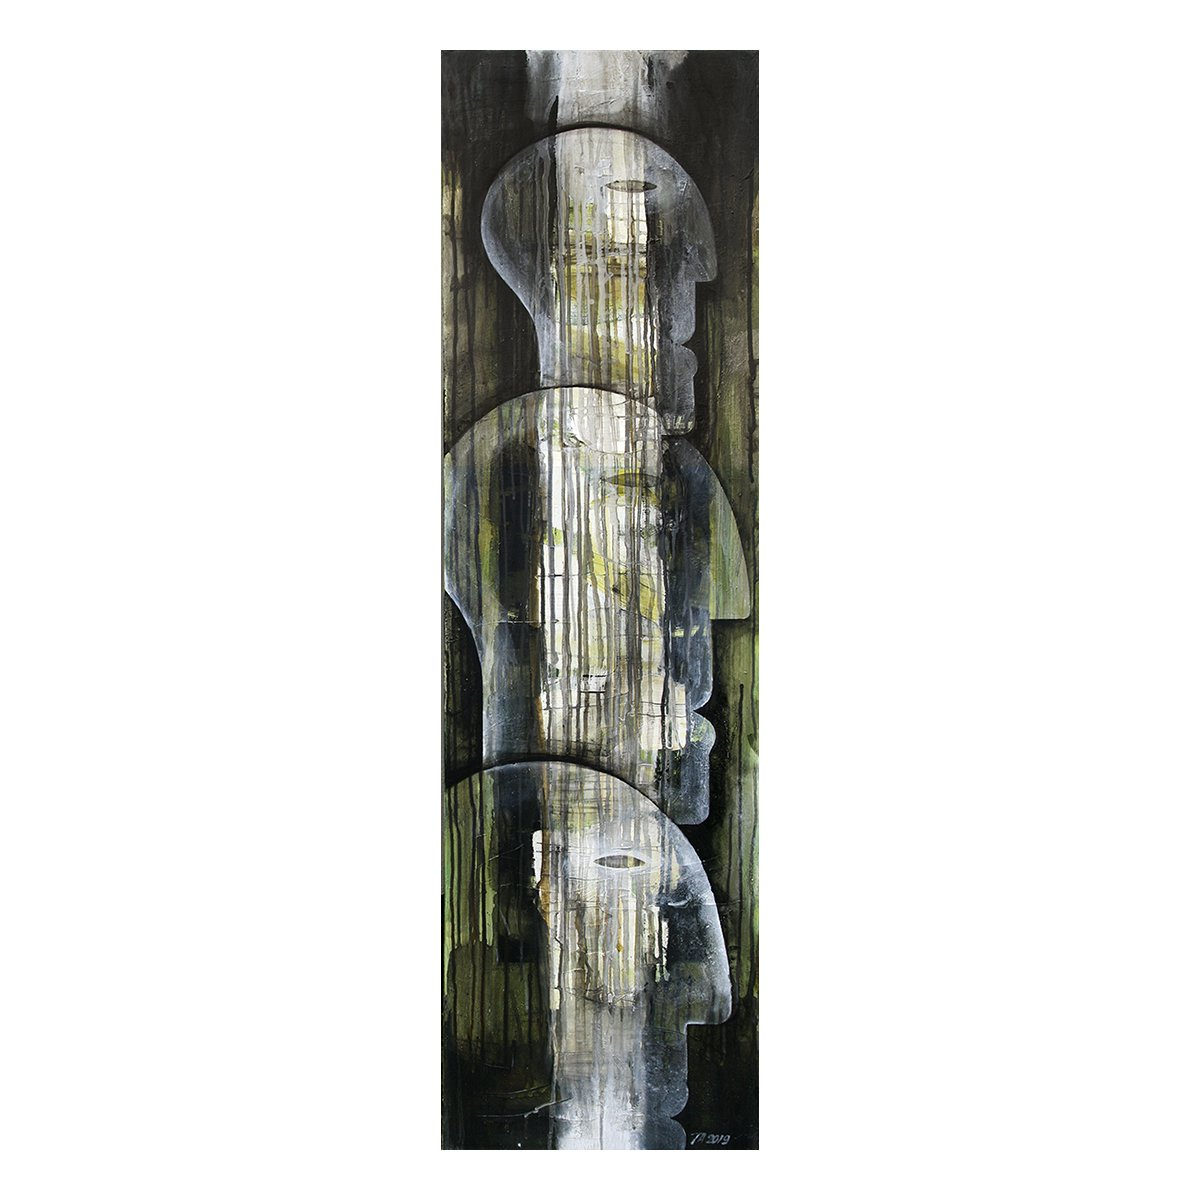 Photo of painting by Terese Andersen, 140x40, title; Tall